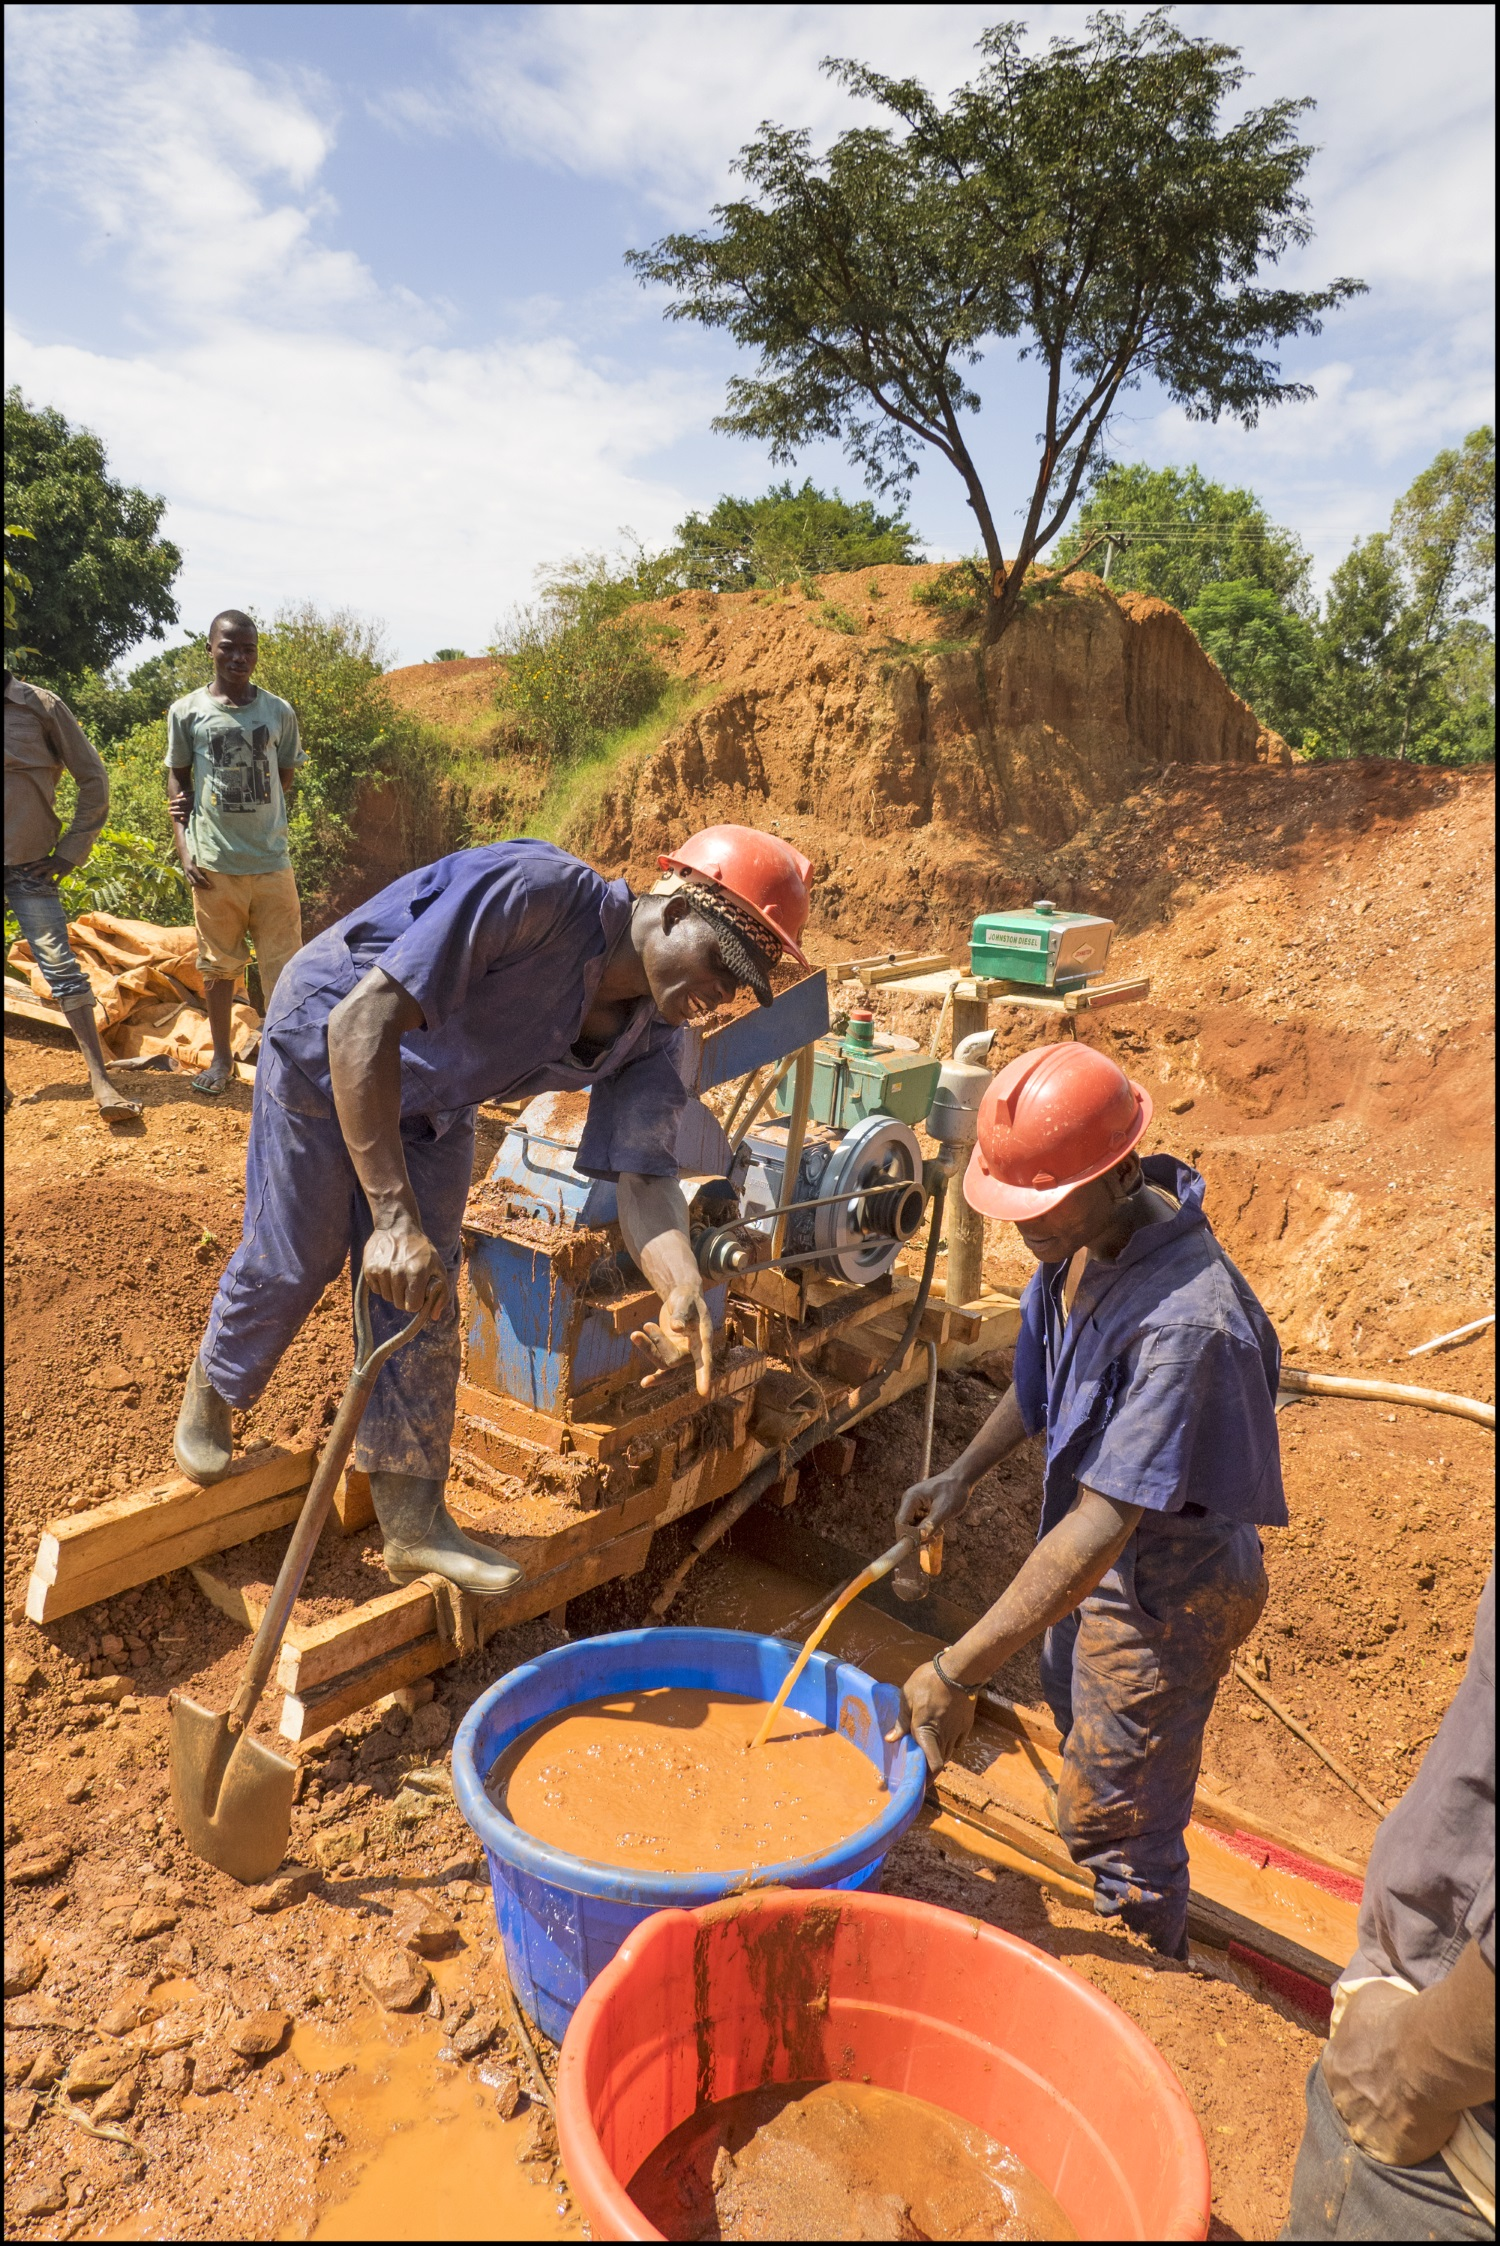 Safer procedures being used on a Fairtrade certified small scale gold mining operation (image credit: Fairtrade UK)